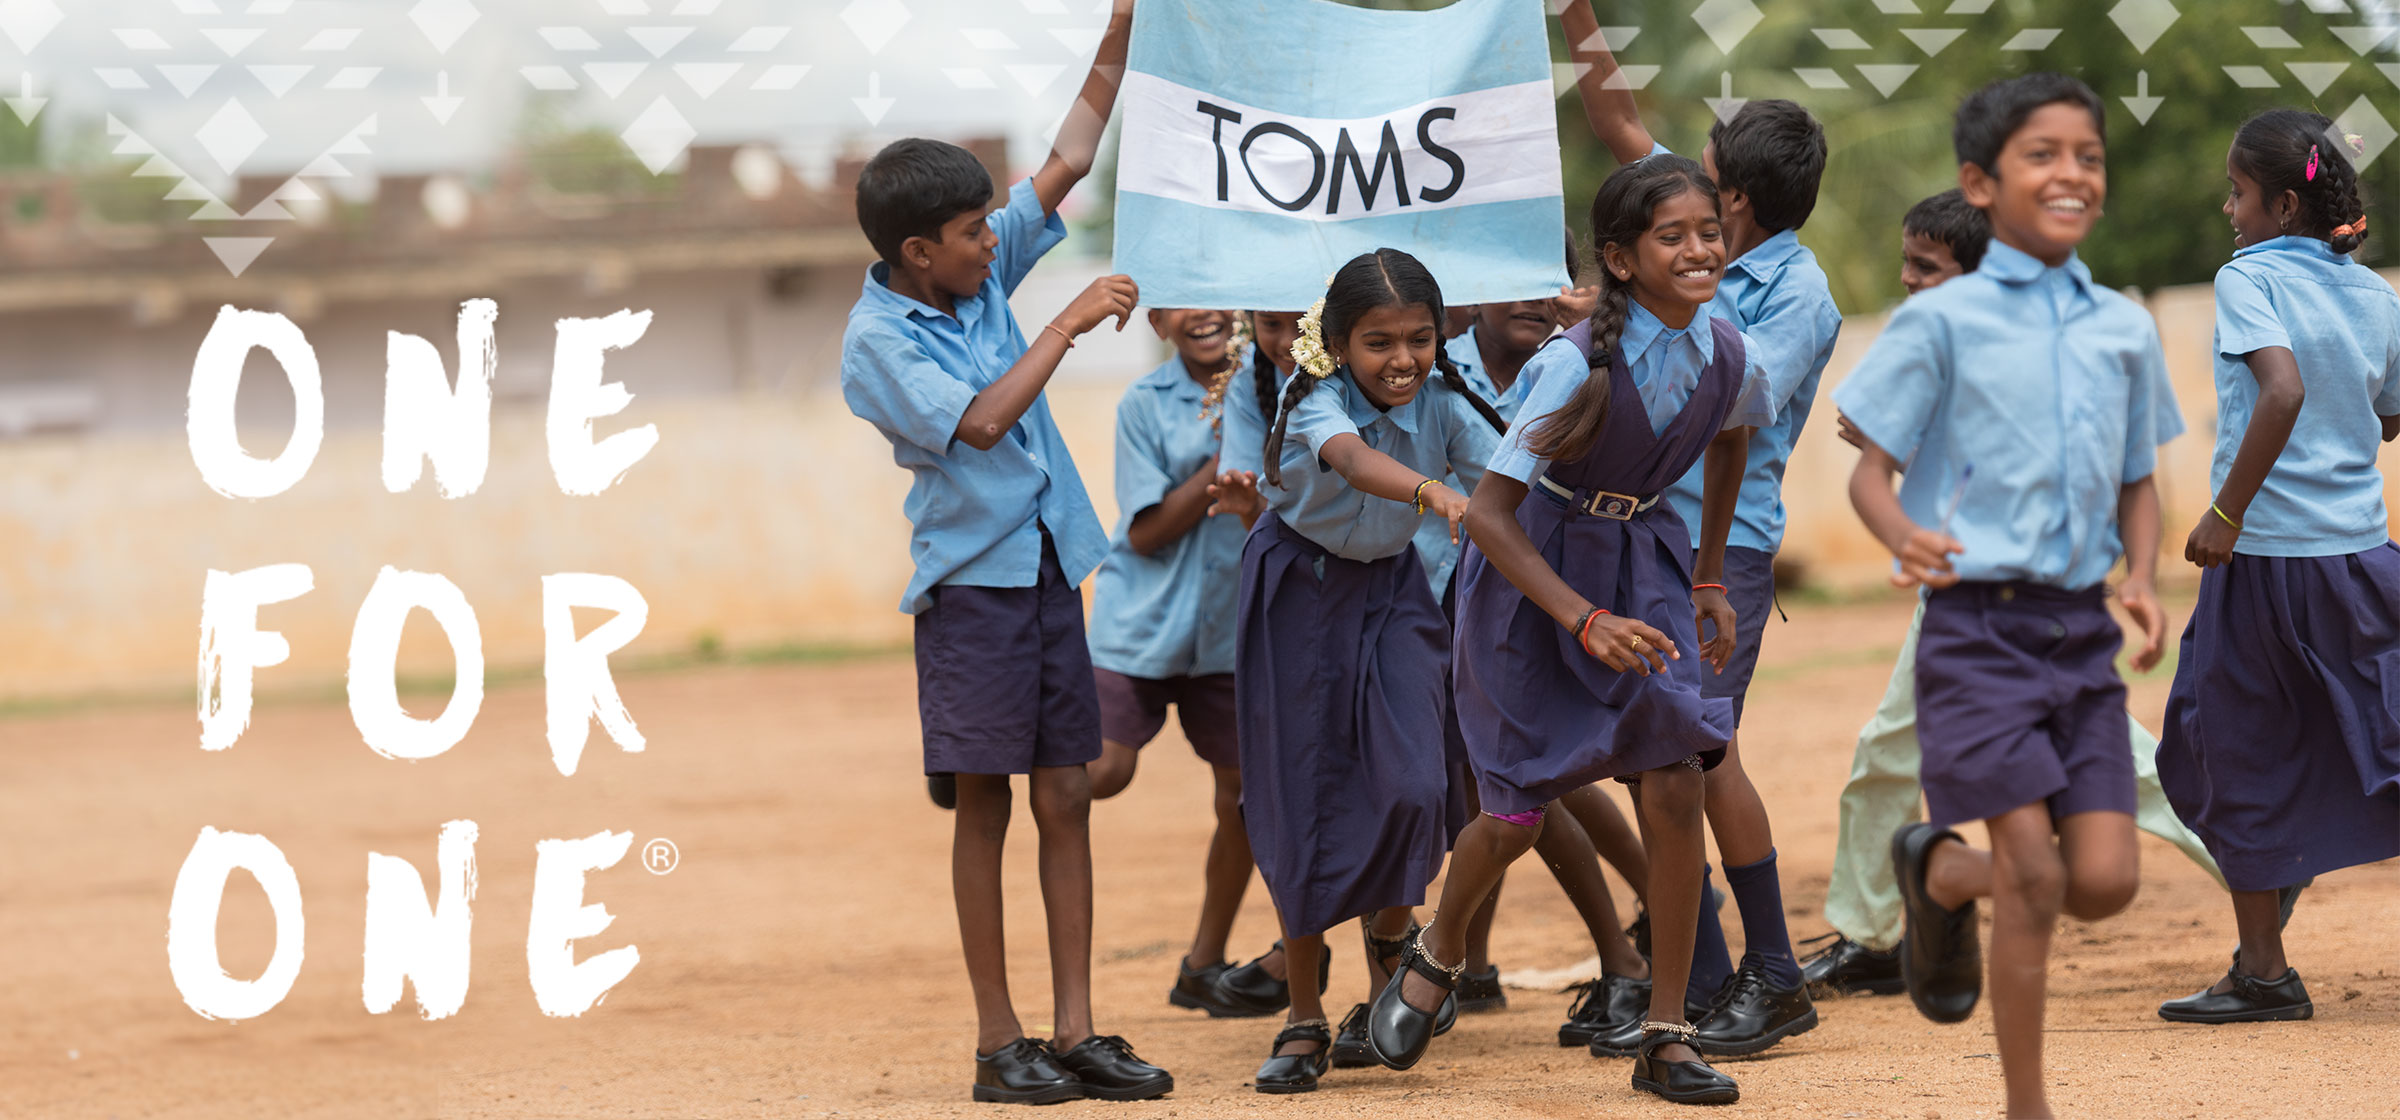 Toms featured in marketing blog post